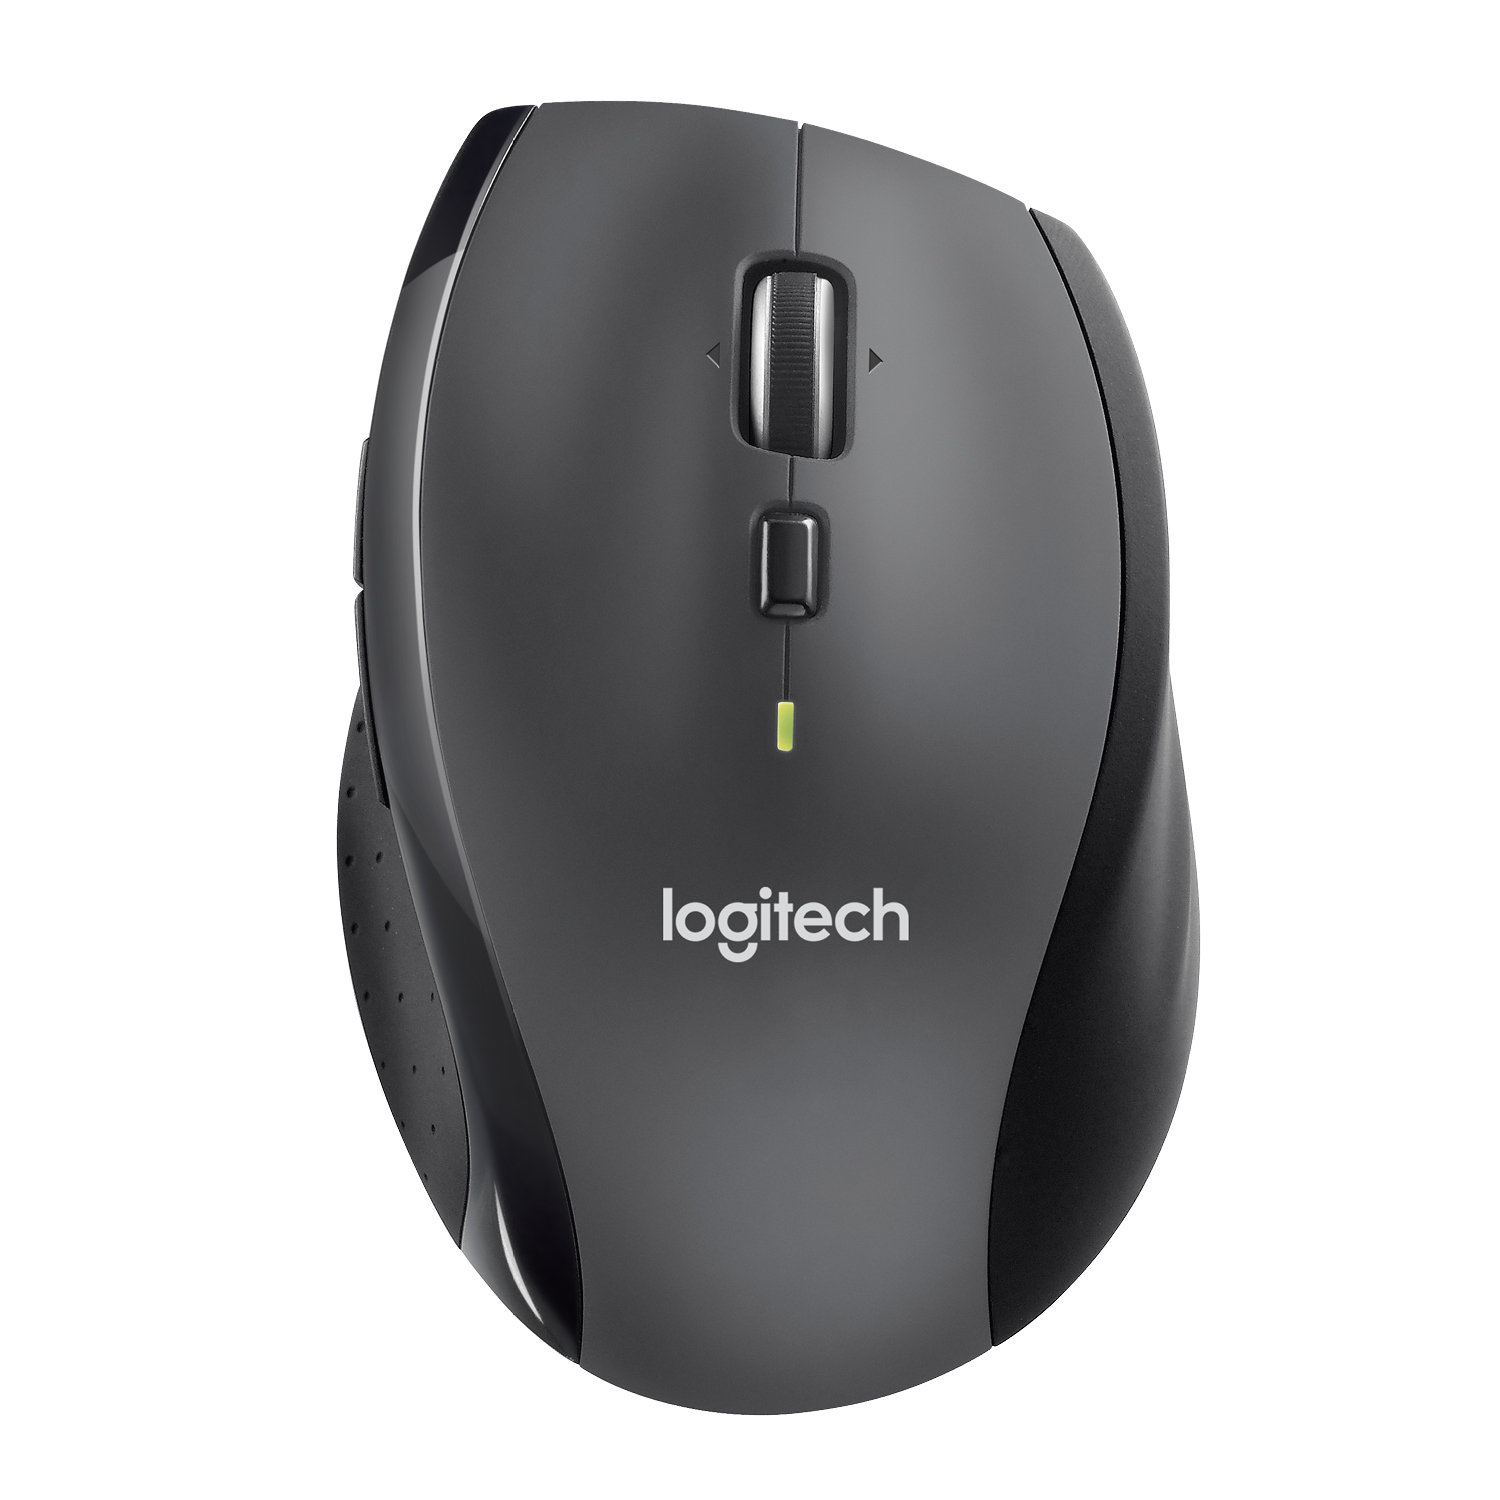 Logitech Wireless Mouse M705 910-001949 - C2000